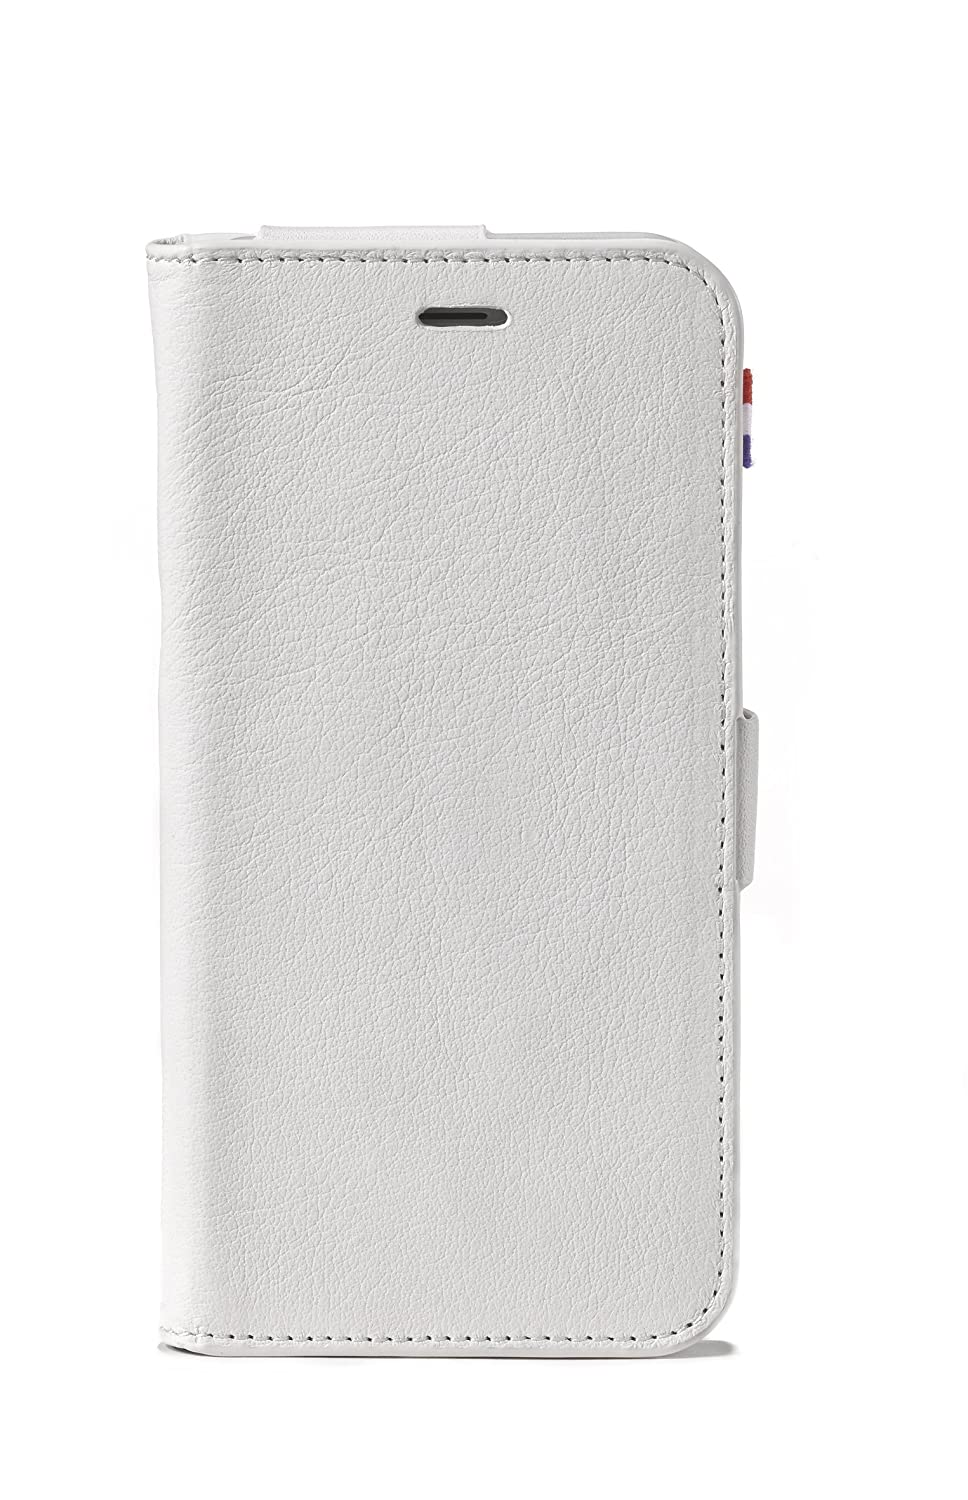 decoded iphone 6 case